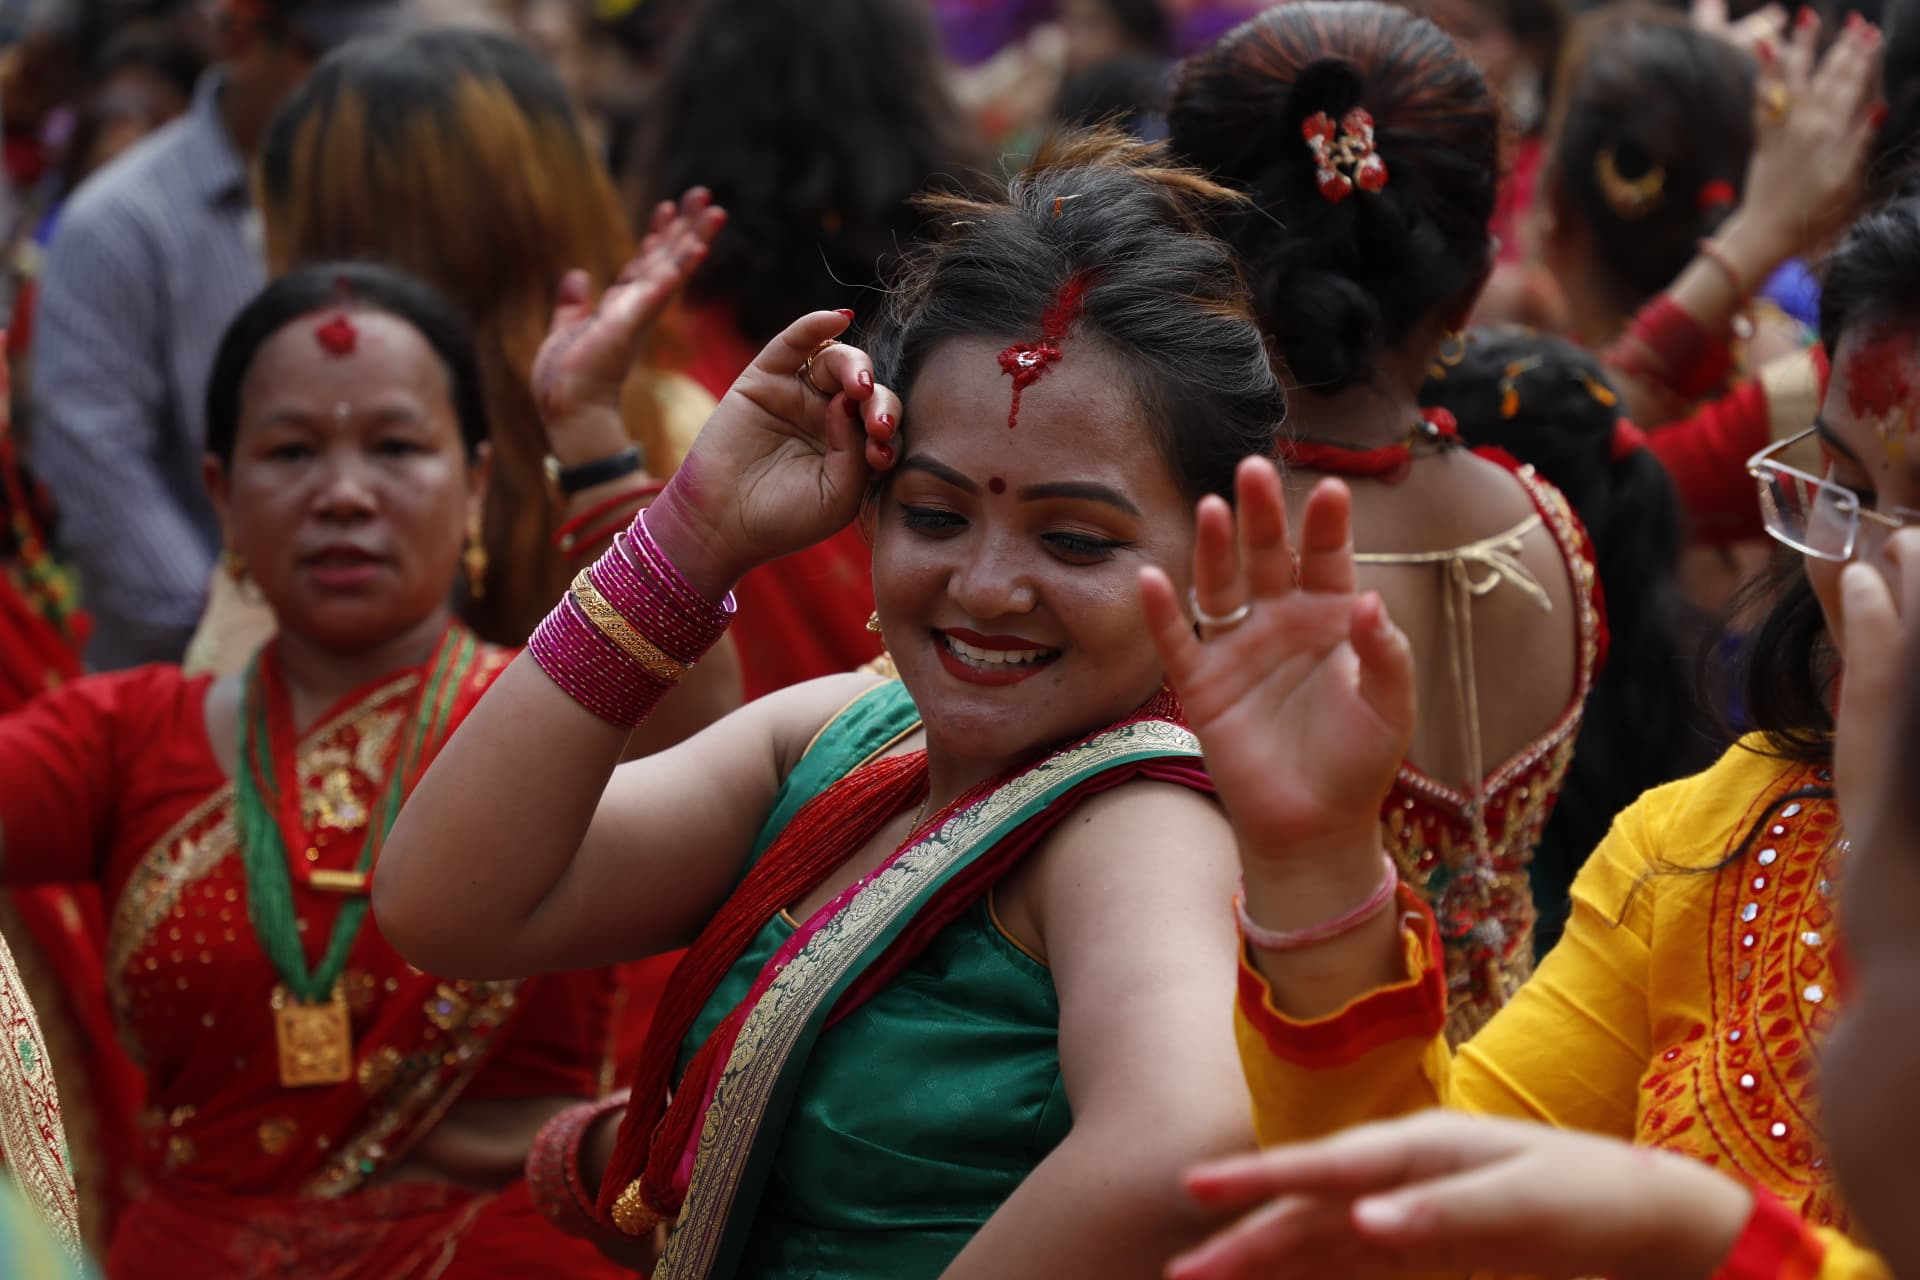 hindu single women in falls This was enabled through unwavering devotion to the hindu god of preservation,  lord vishnu  single women should avoid going out alone in public places  during  find out when the holi festival falls each year in india.